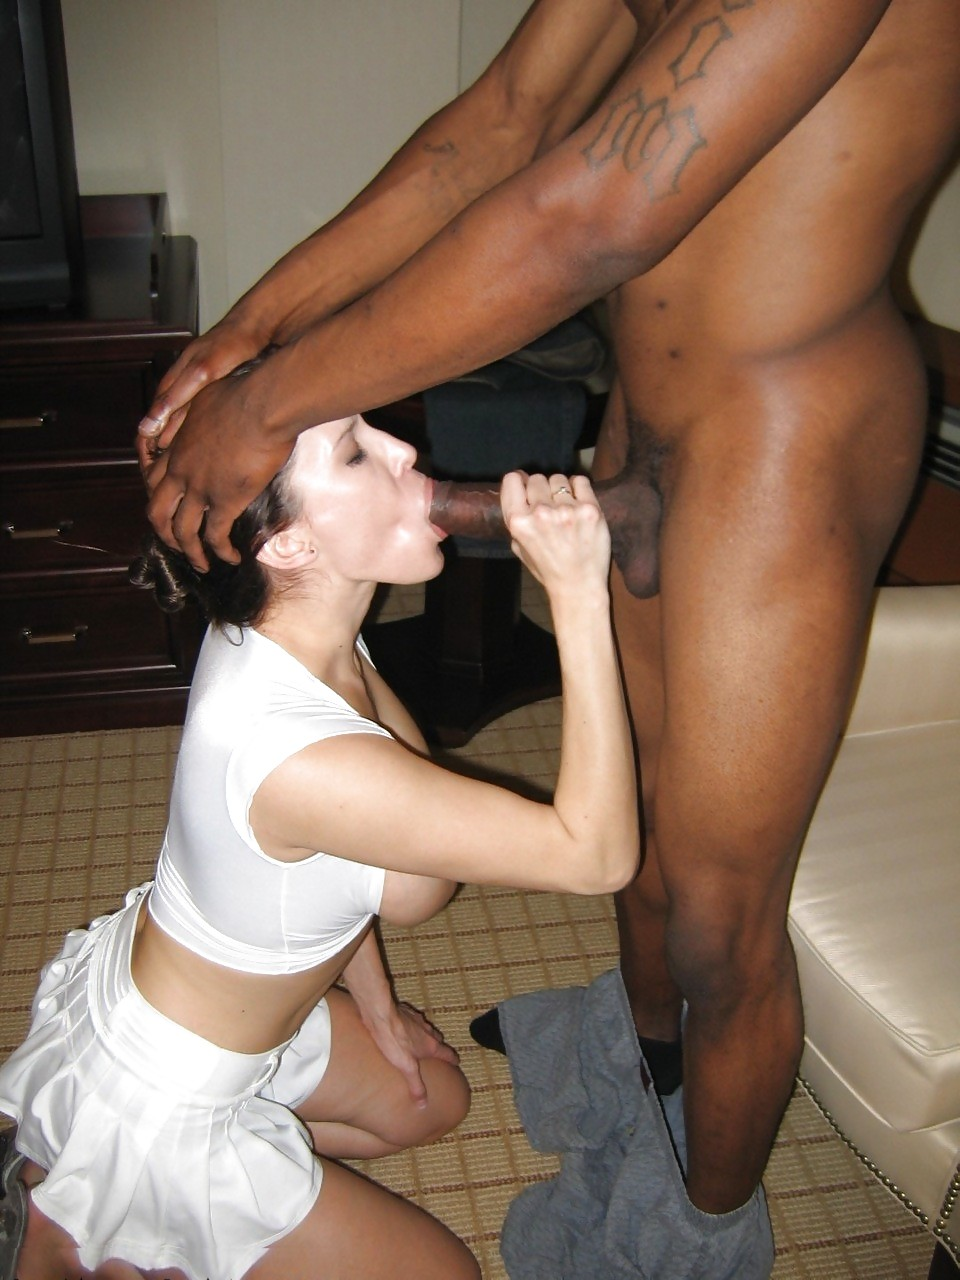 Join. Real wife interracial gangbang similar. means